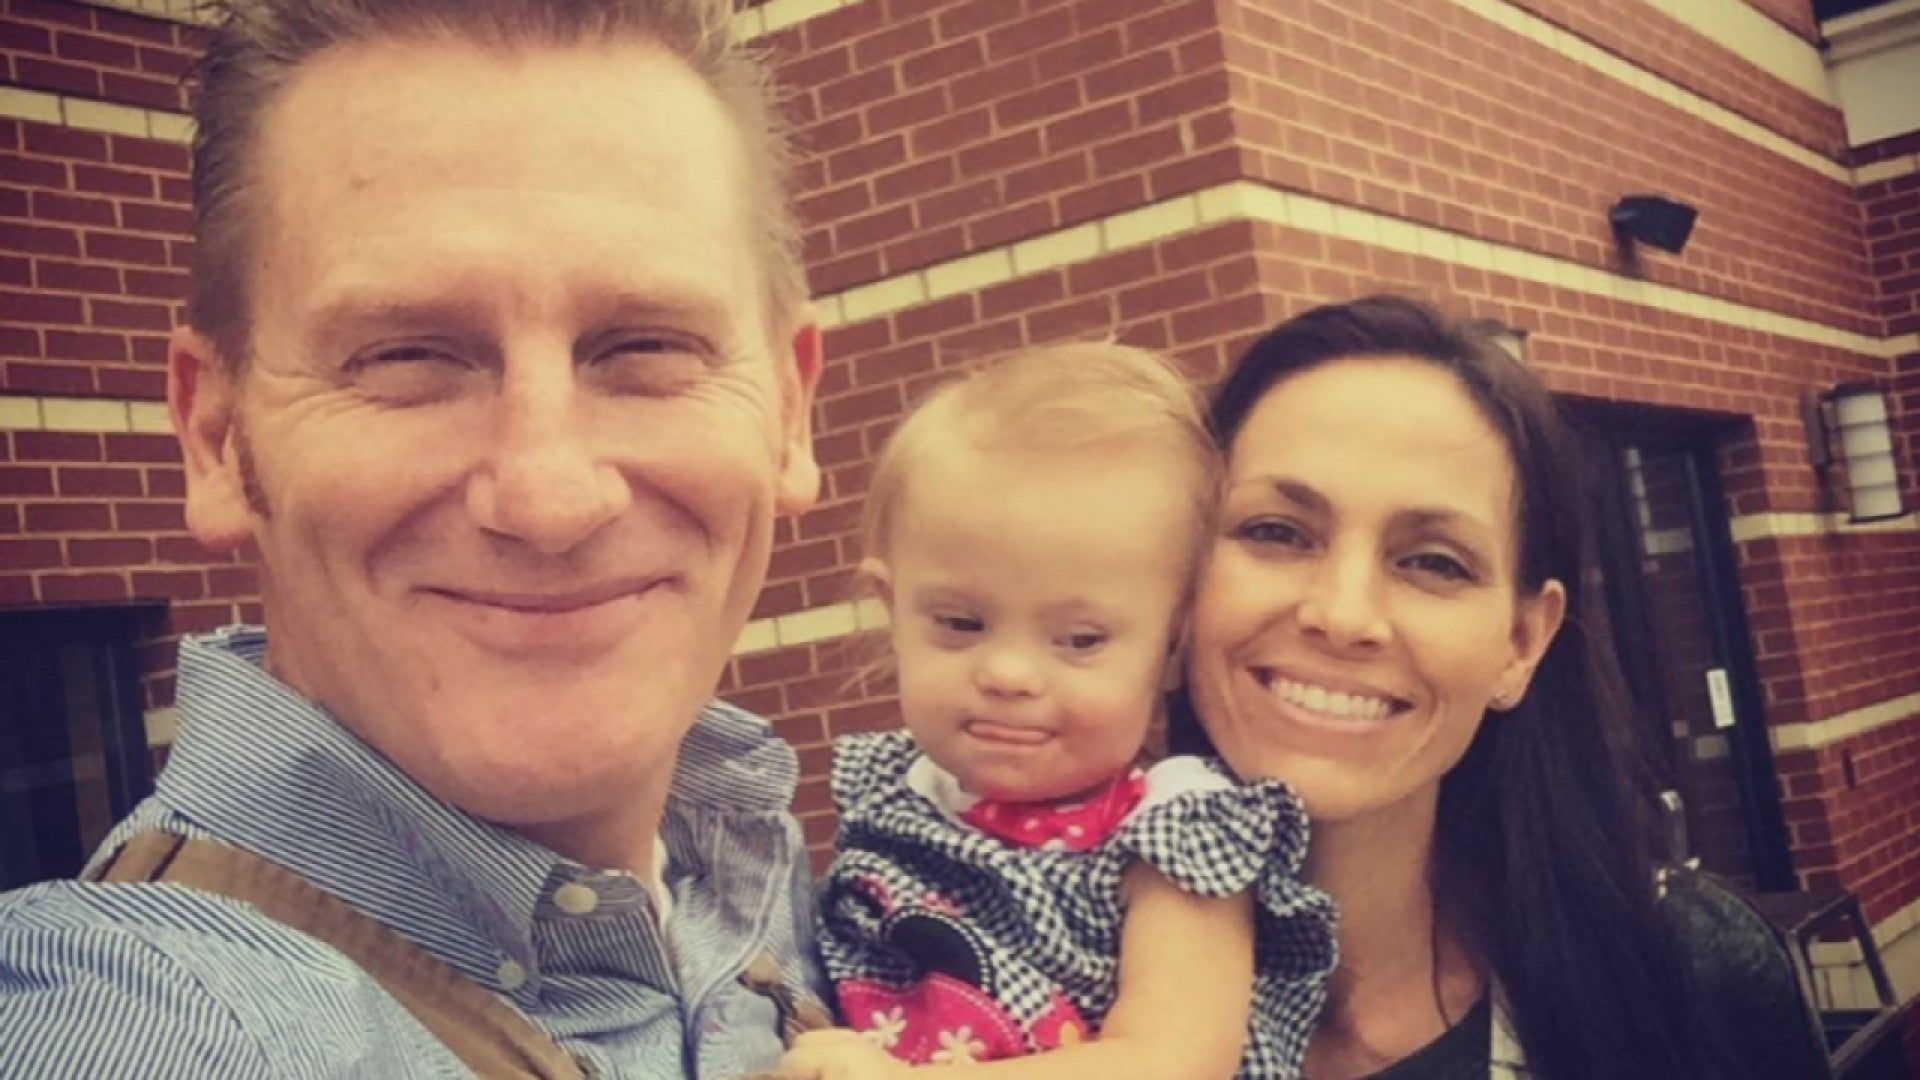 Rory Feek Shares First Video Of Daughter Indiana Speaking Entertainment Tonight Rory feek always knew his wife joey feek had the voice of an angel, but it and so rory, who's penned tunes recorded by the likes of blake shelton, kenny chesney and reba mcentire, was happy to take a step back and let joey take center stage—though he was right next to her every step of the way. joey feek cooks dinner for her family from her hospice bed